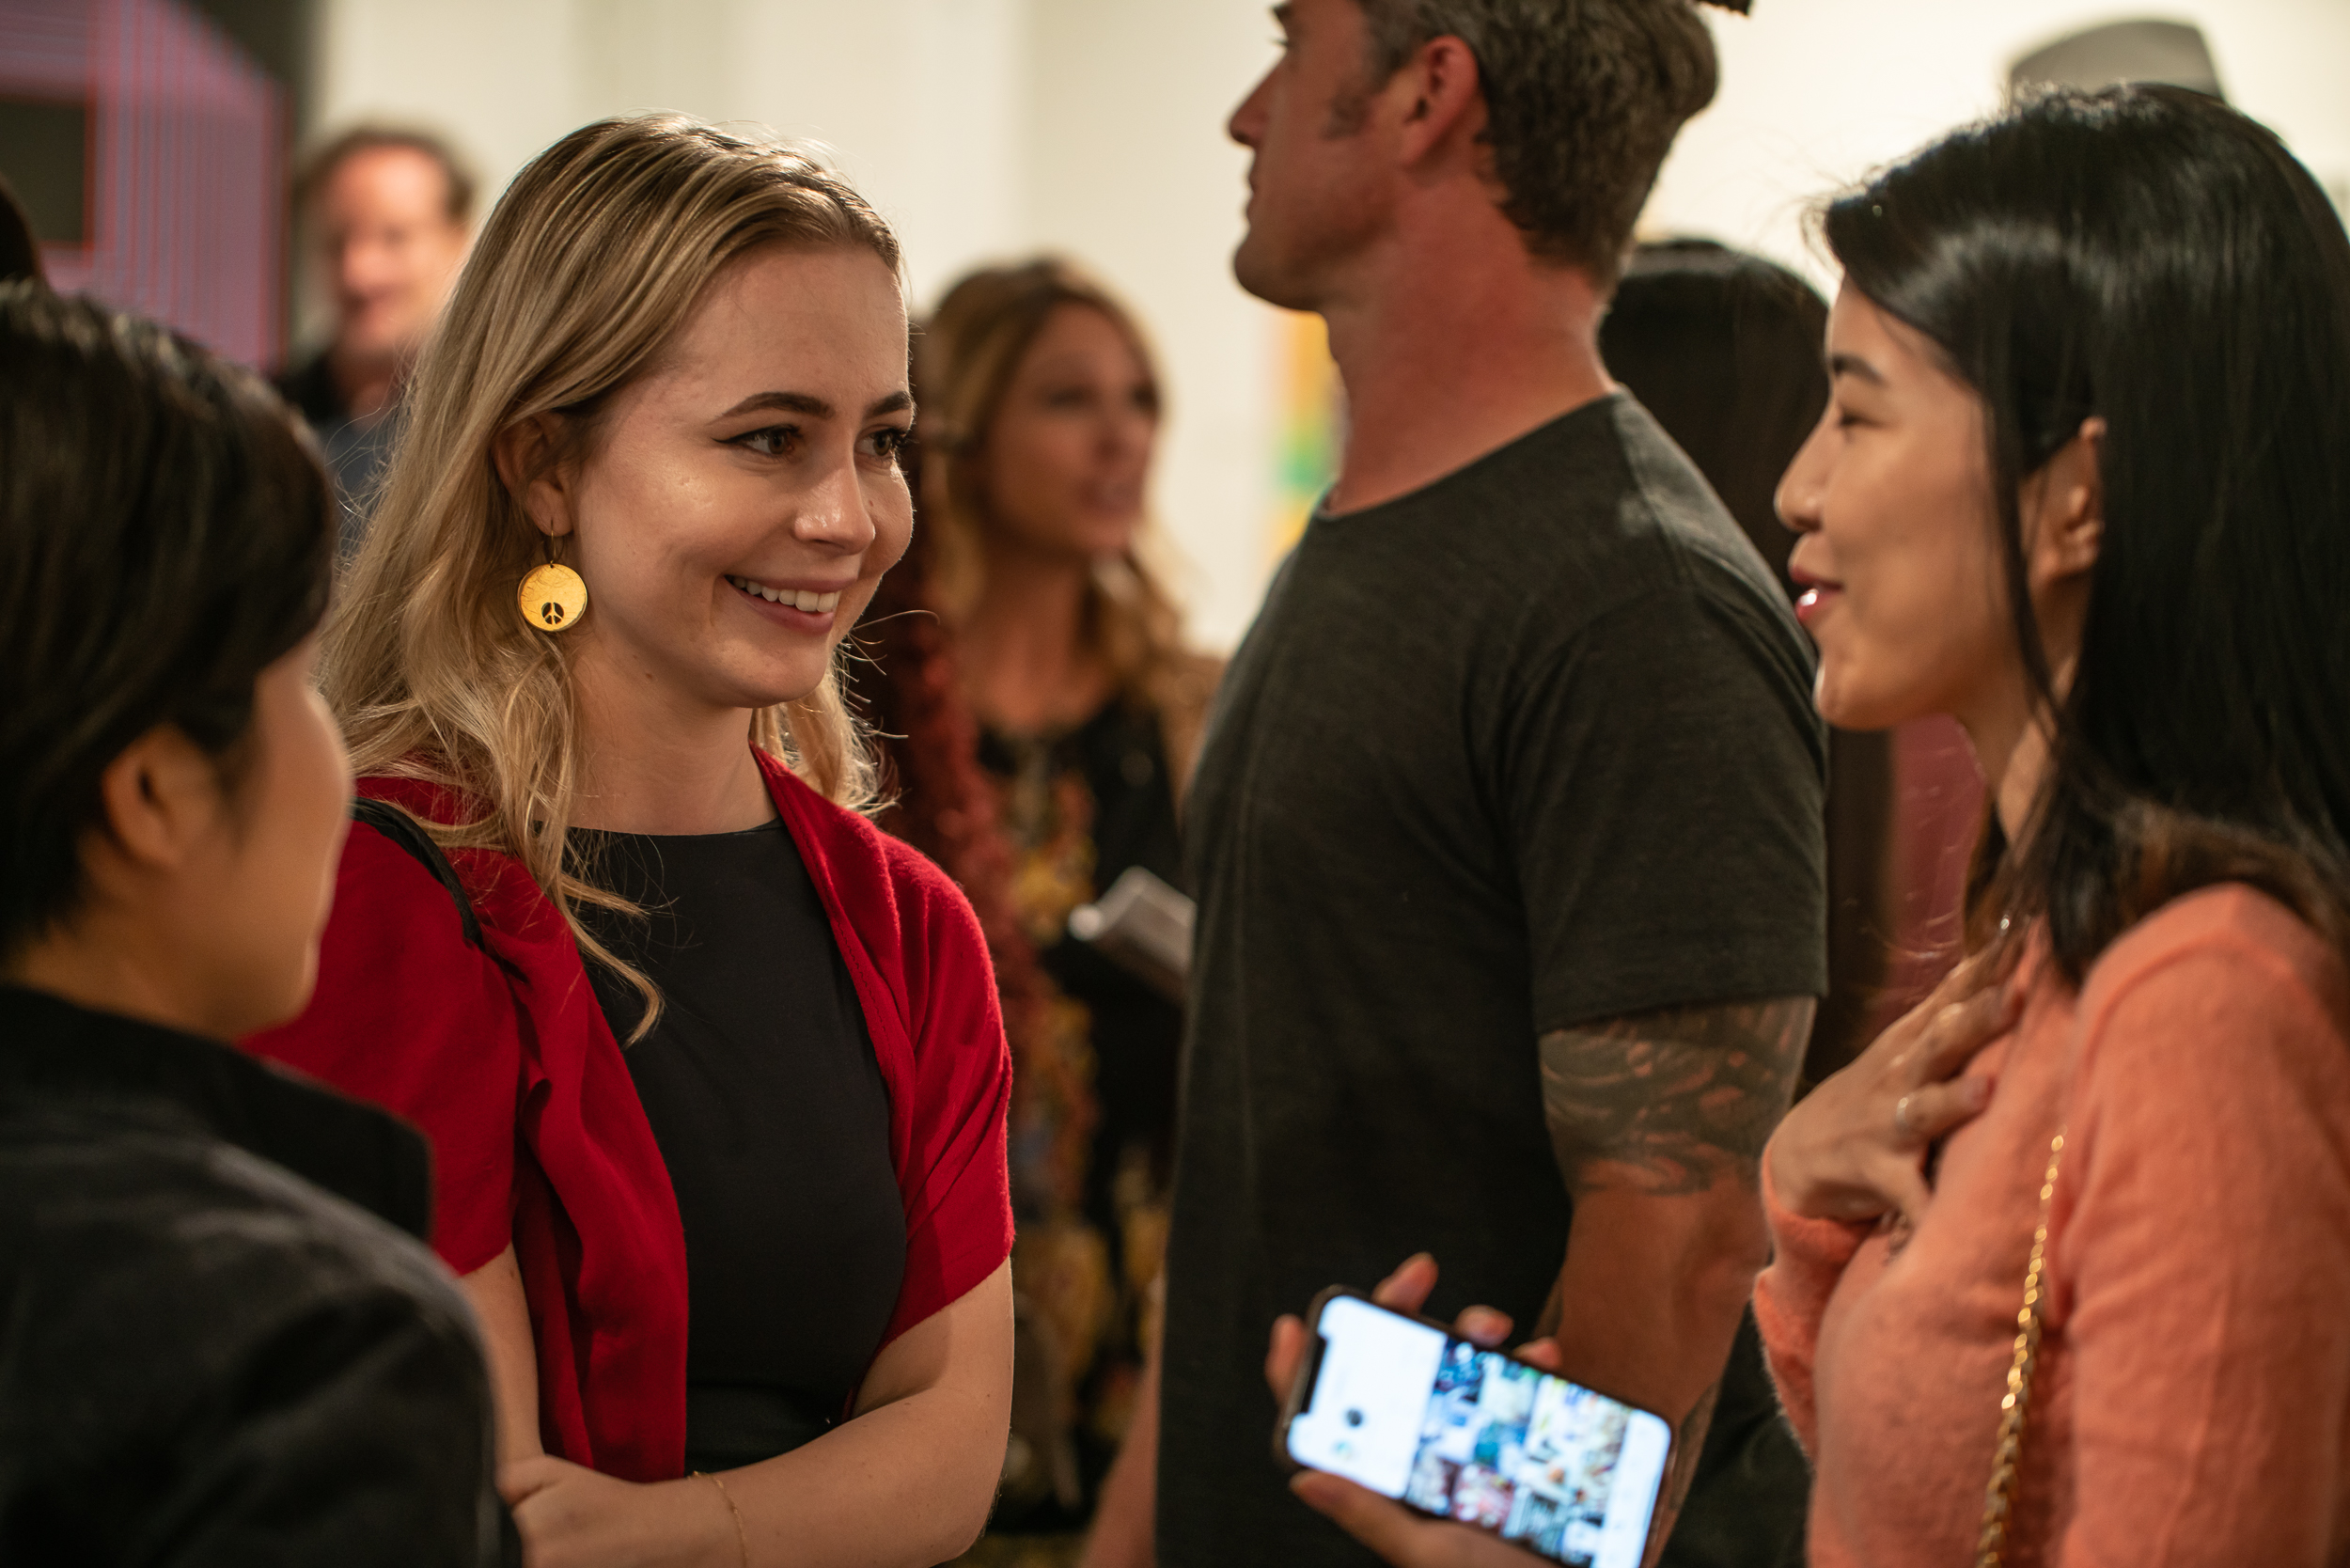 MaterialRevolution_KrisKish-68.jpg